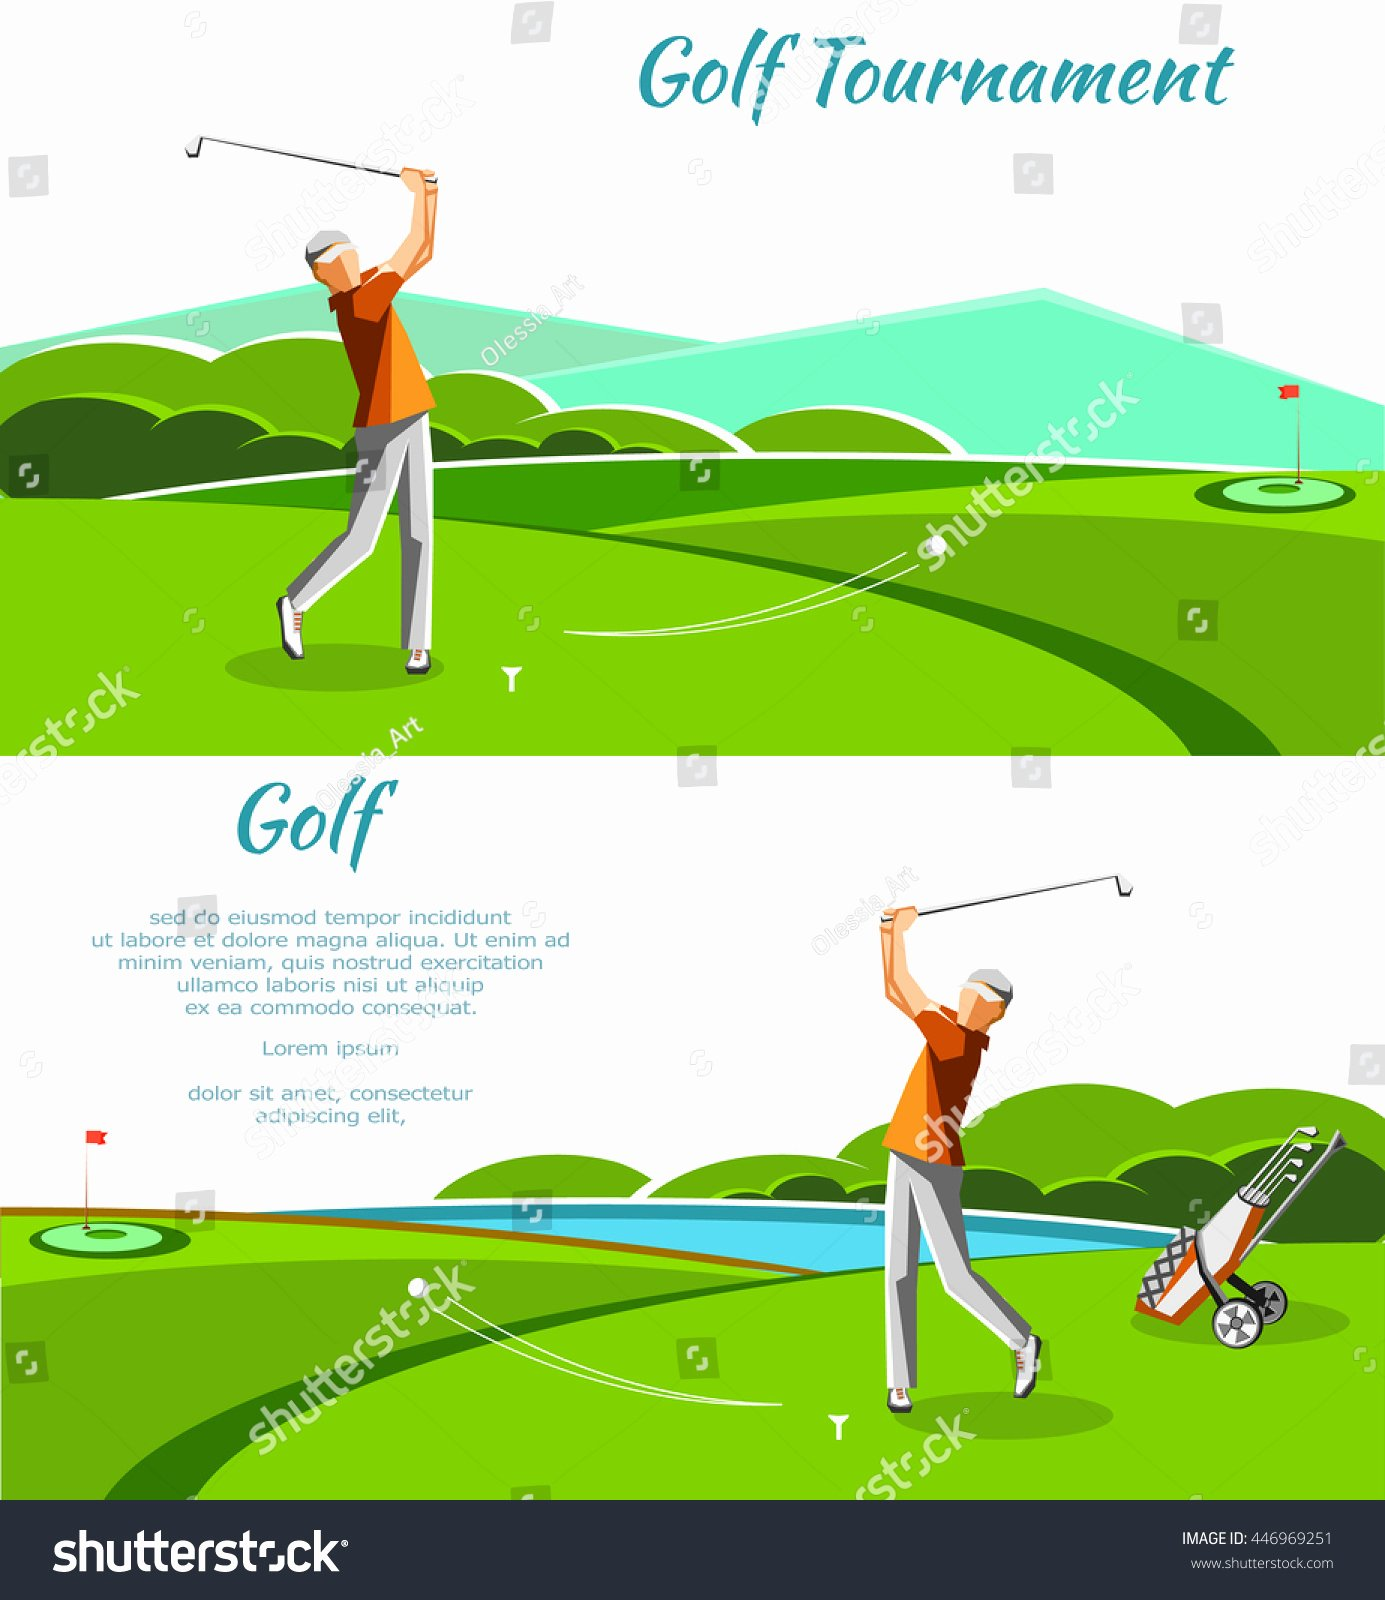 Two Golf Club Petition tournament Banners Stock Vector